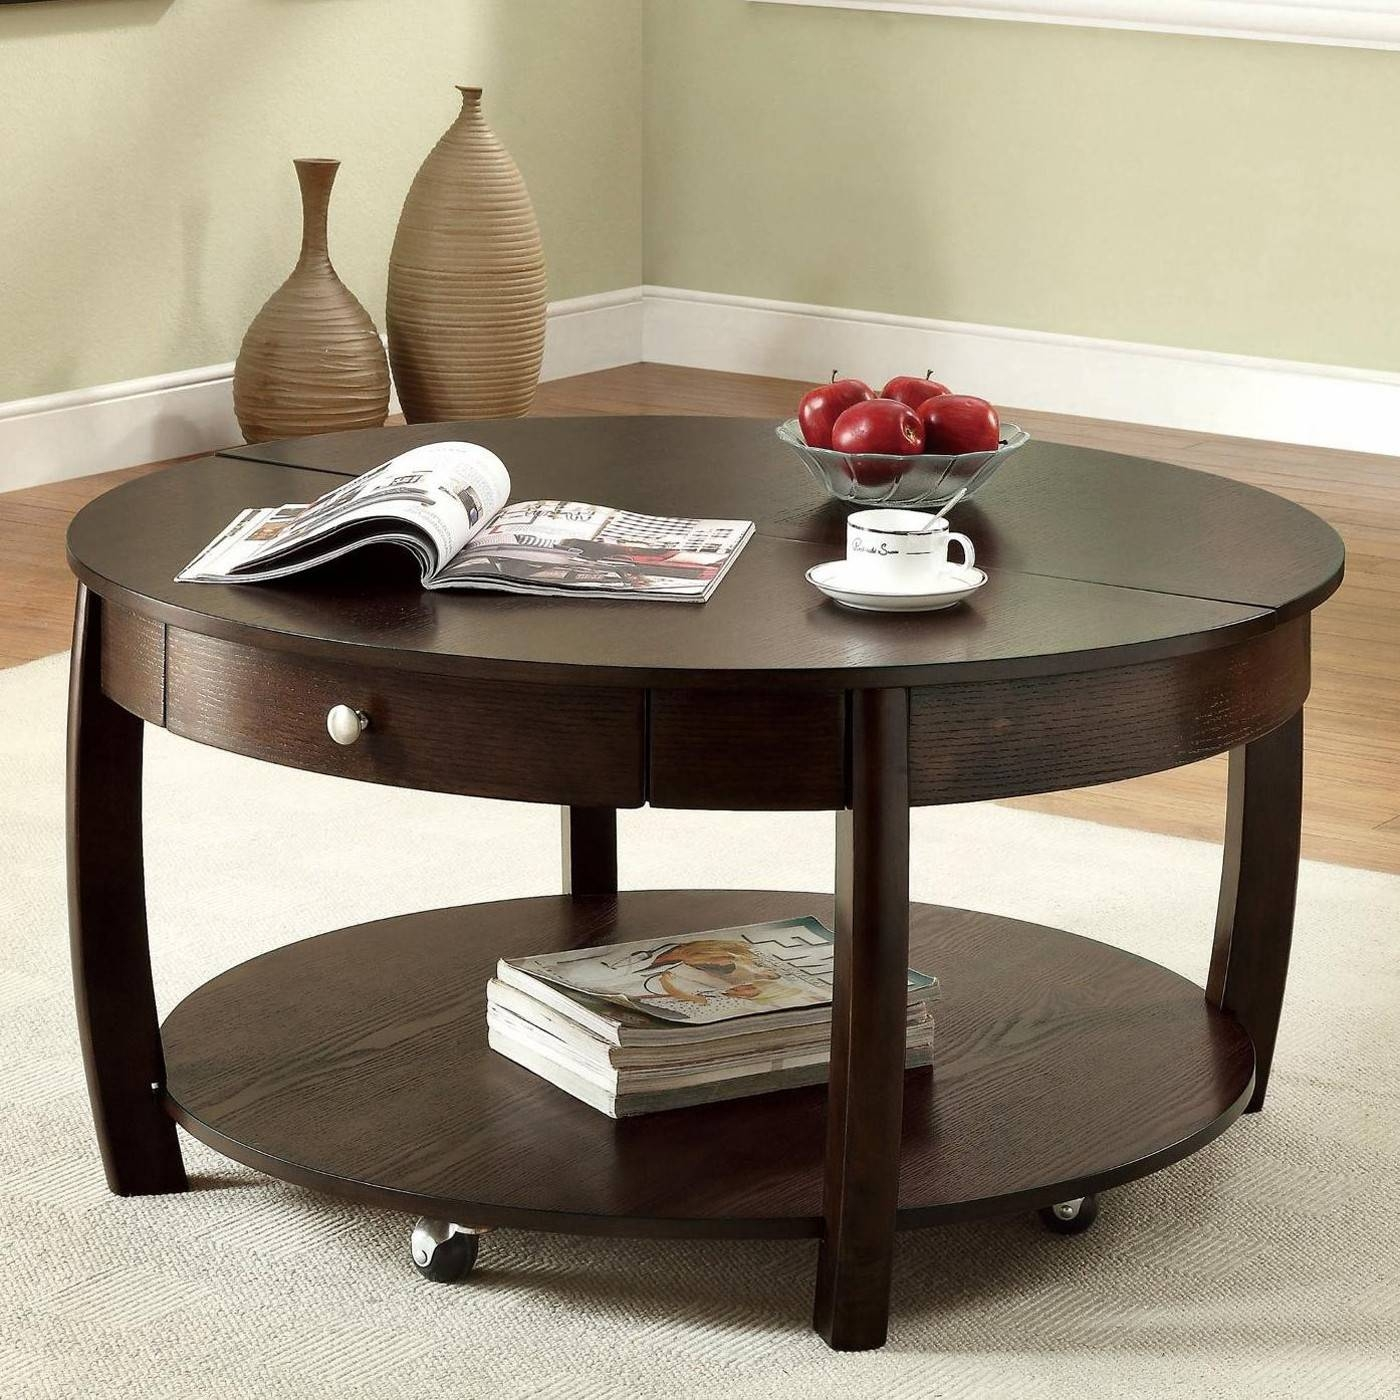 Mesmerizing Small Coffee Tables With Drawers Bring Astounding with regard to Round Coffee Tables With Drawers (Image 17 of 30)